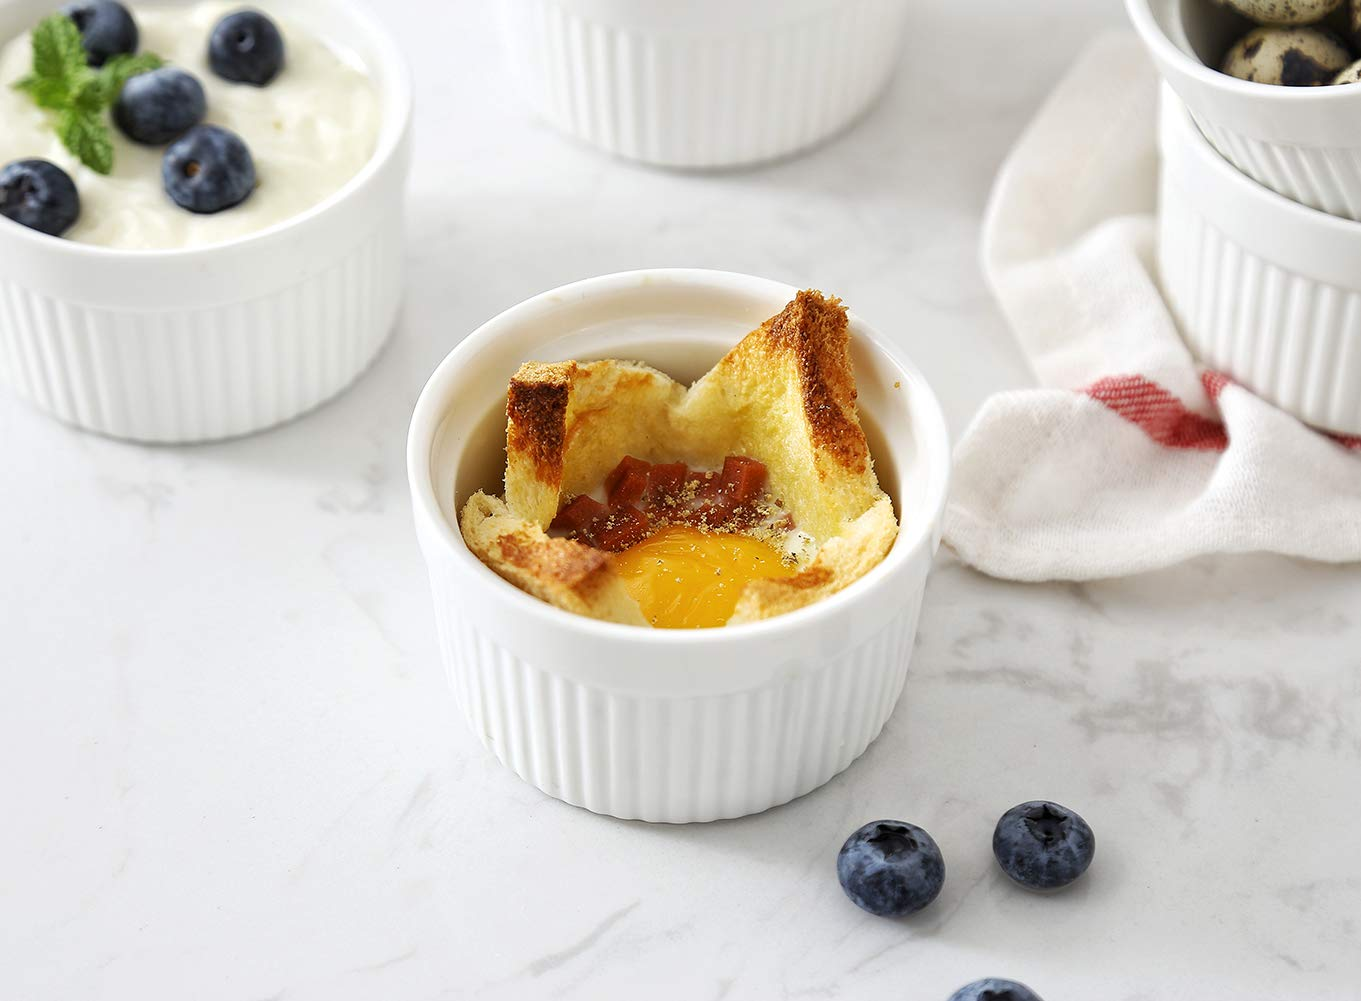 6 oz Ramekin Set of 8 Serving Bowl for Souffle Creme Brulee and Dipping Sauces Porcelain White by LAUCHUH (Image #2)